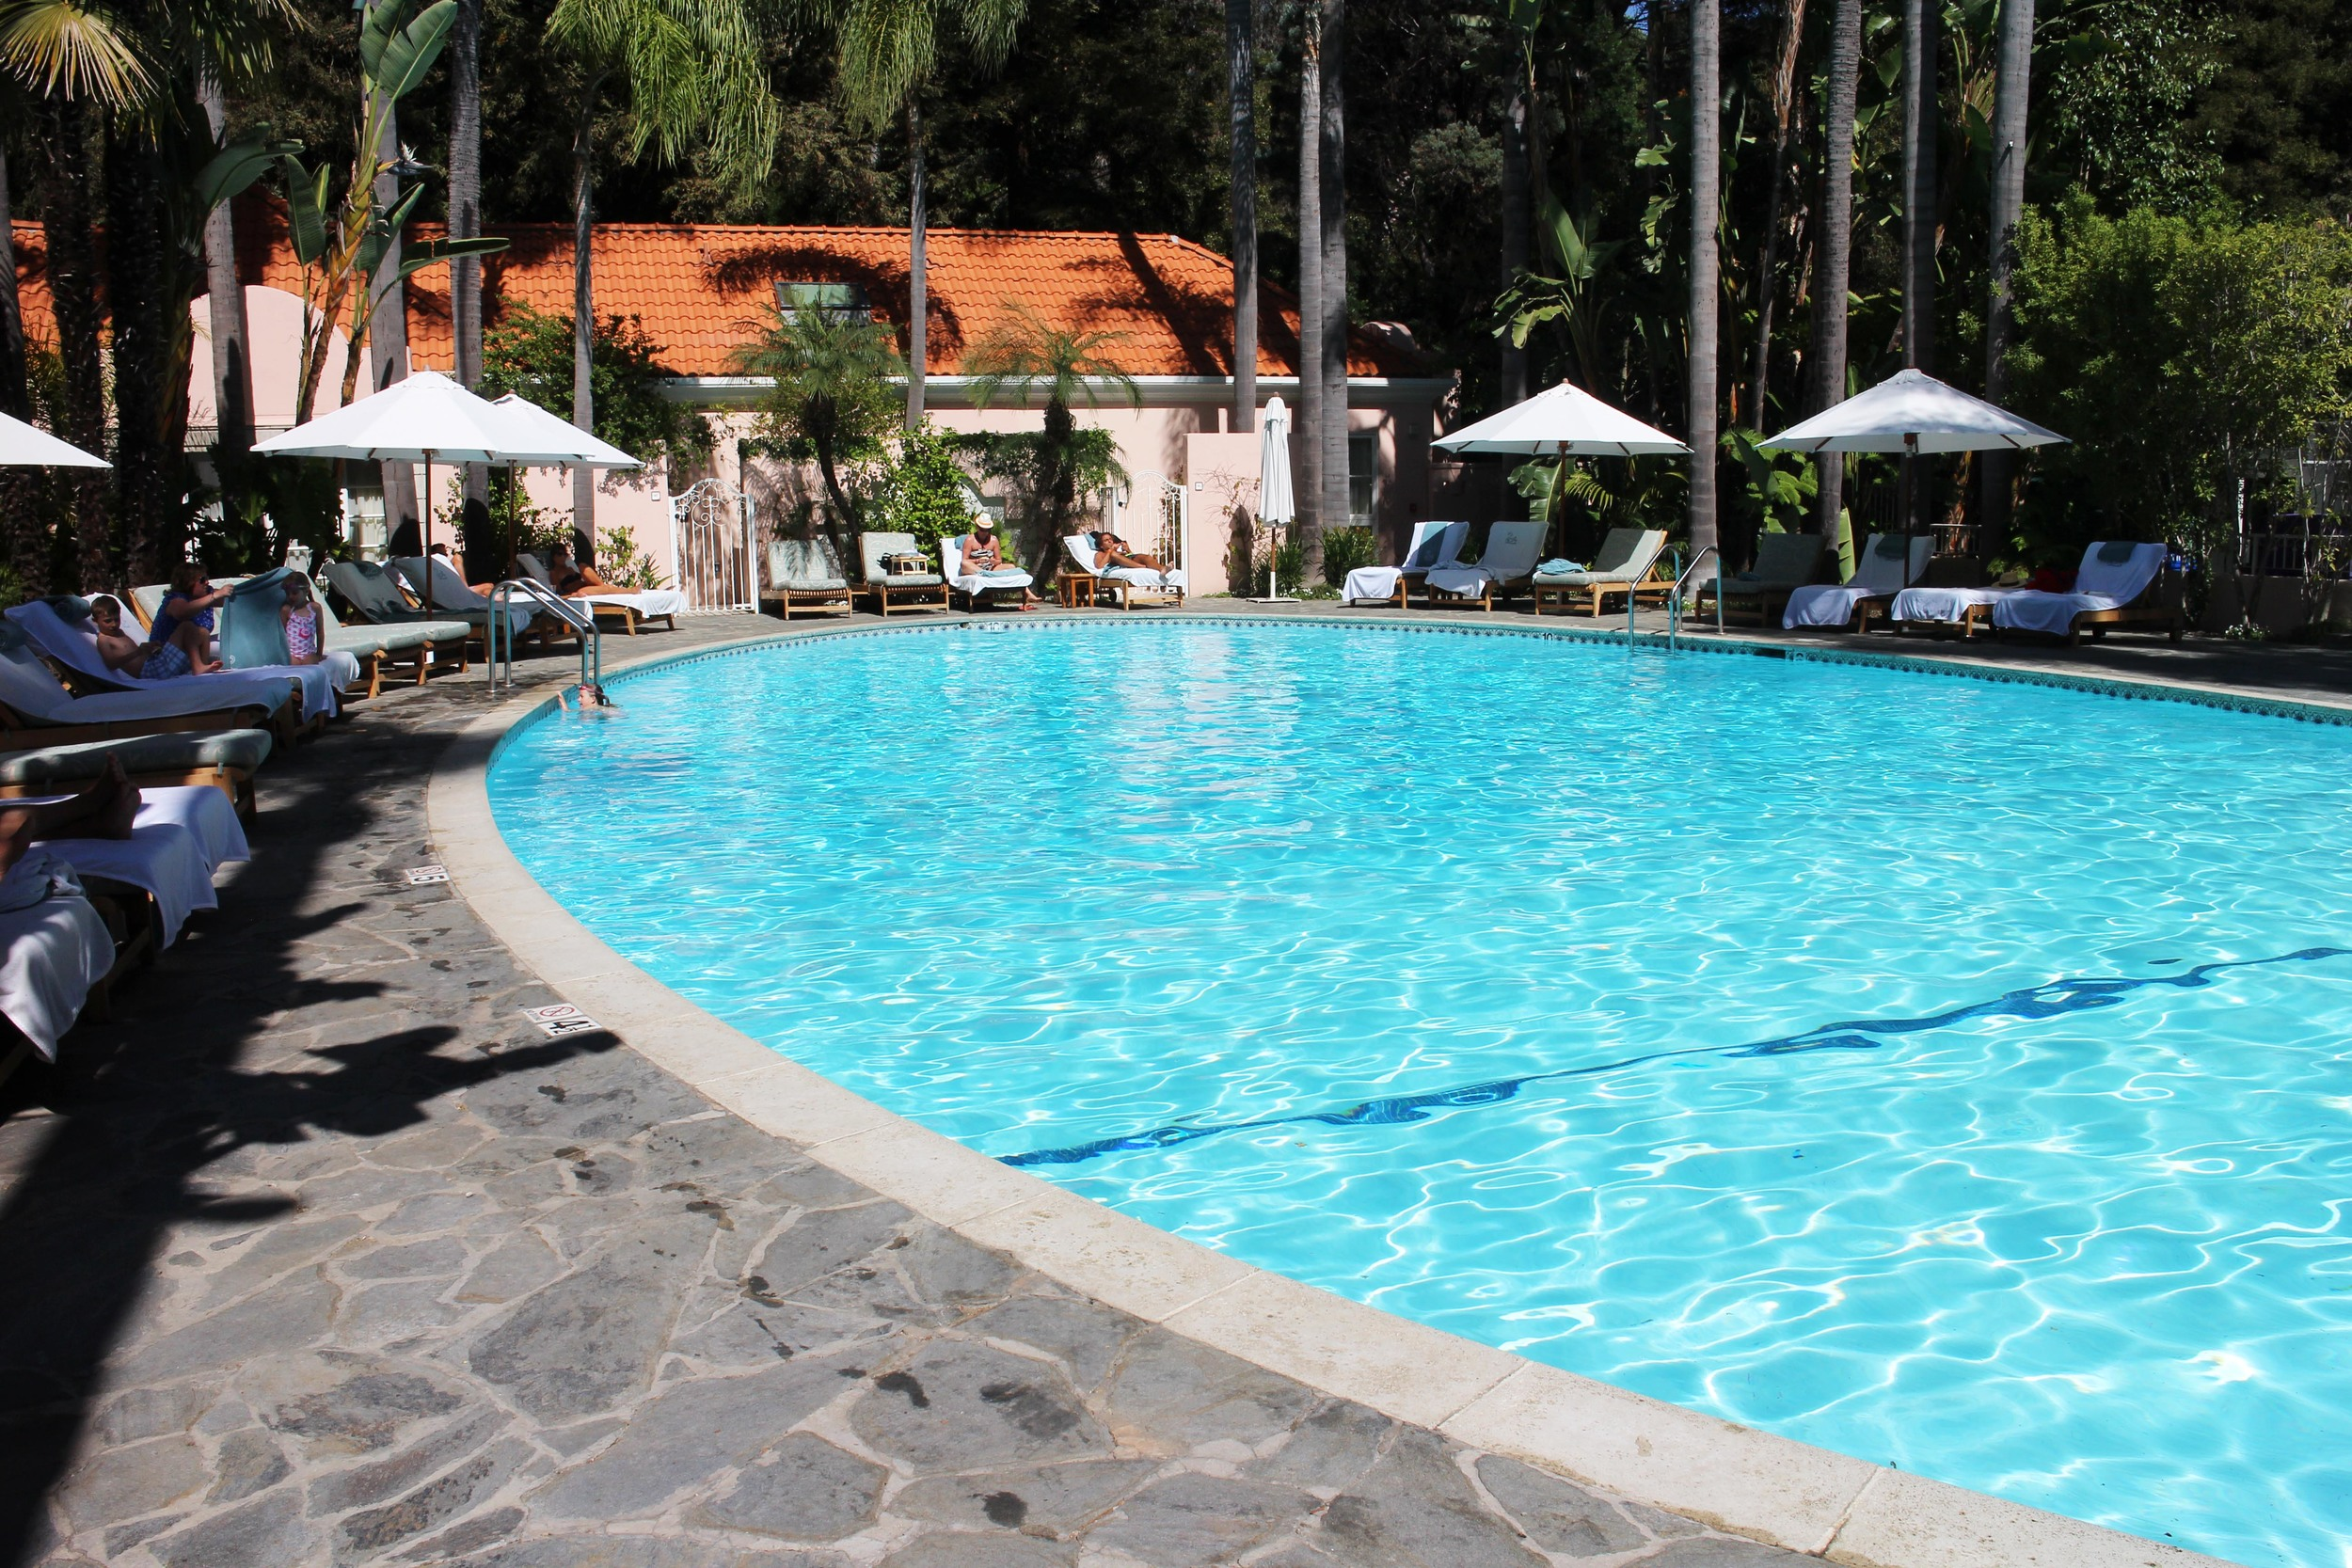 Iconic Bel Air Hotel Swimming Pool